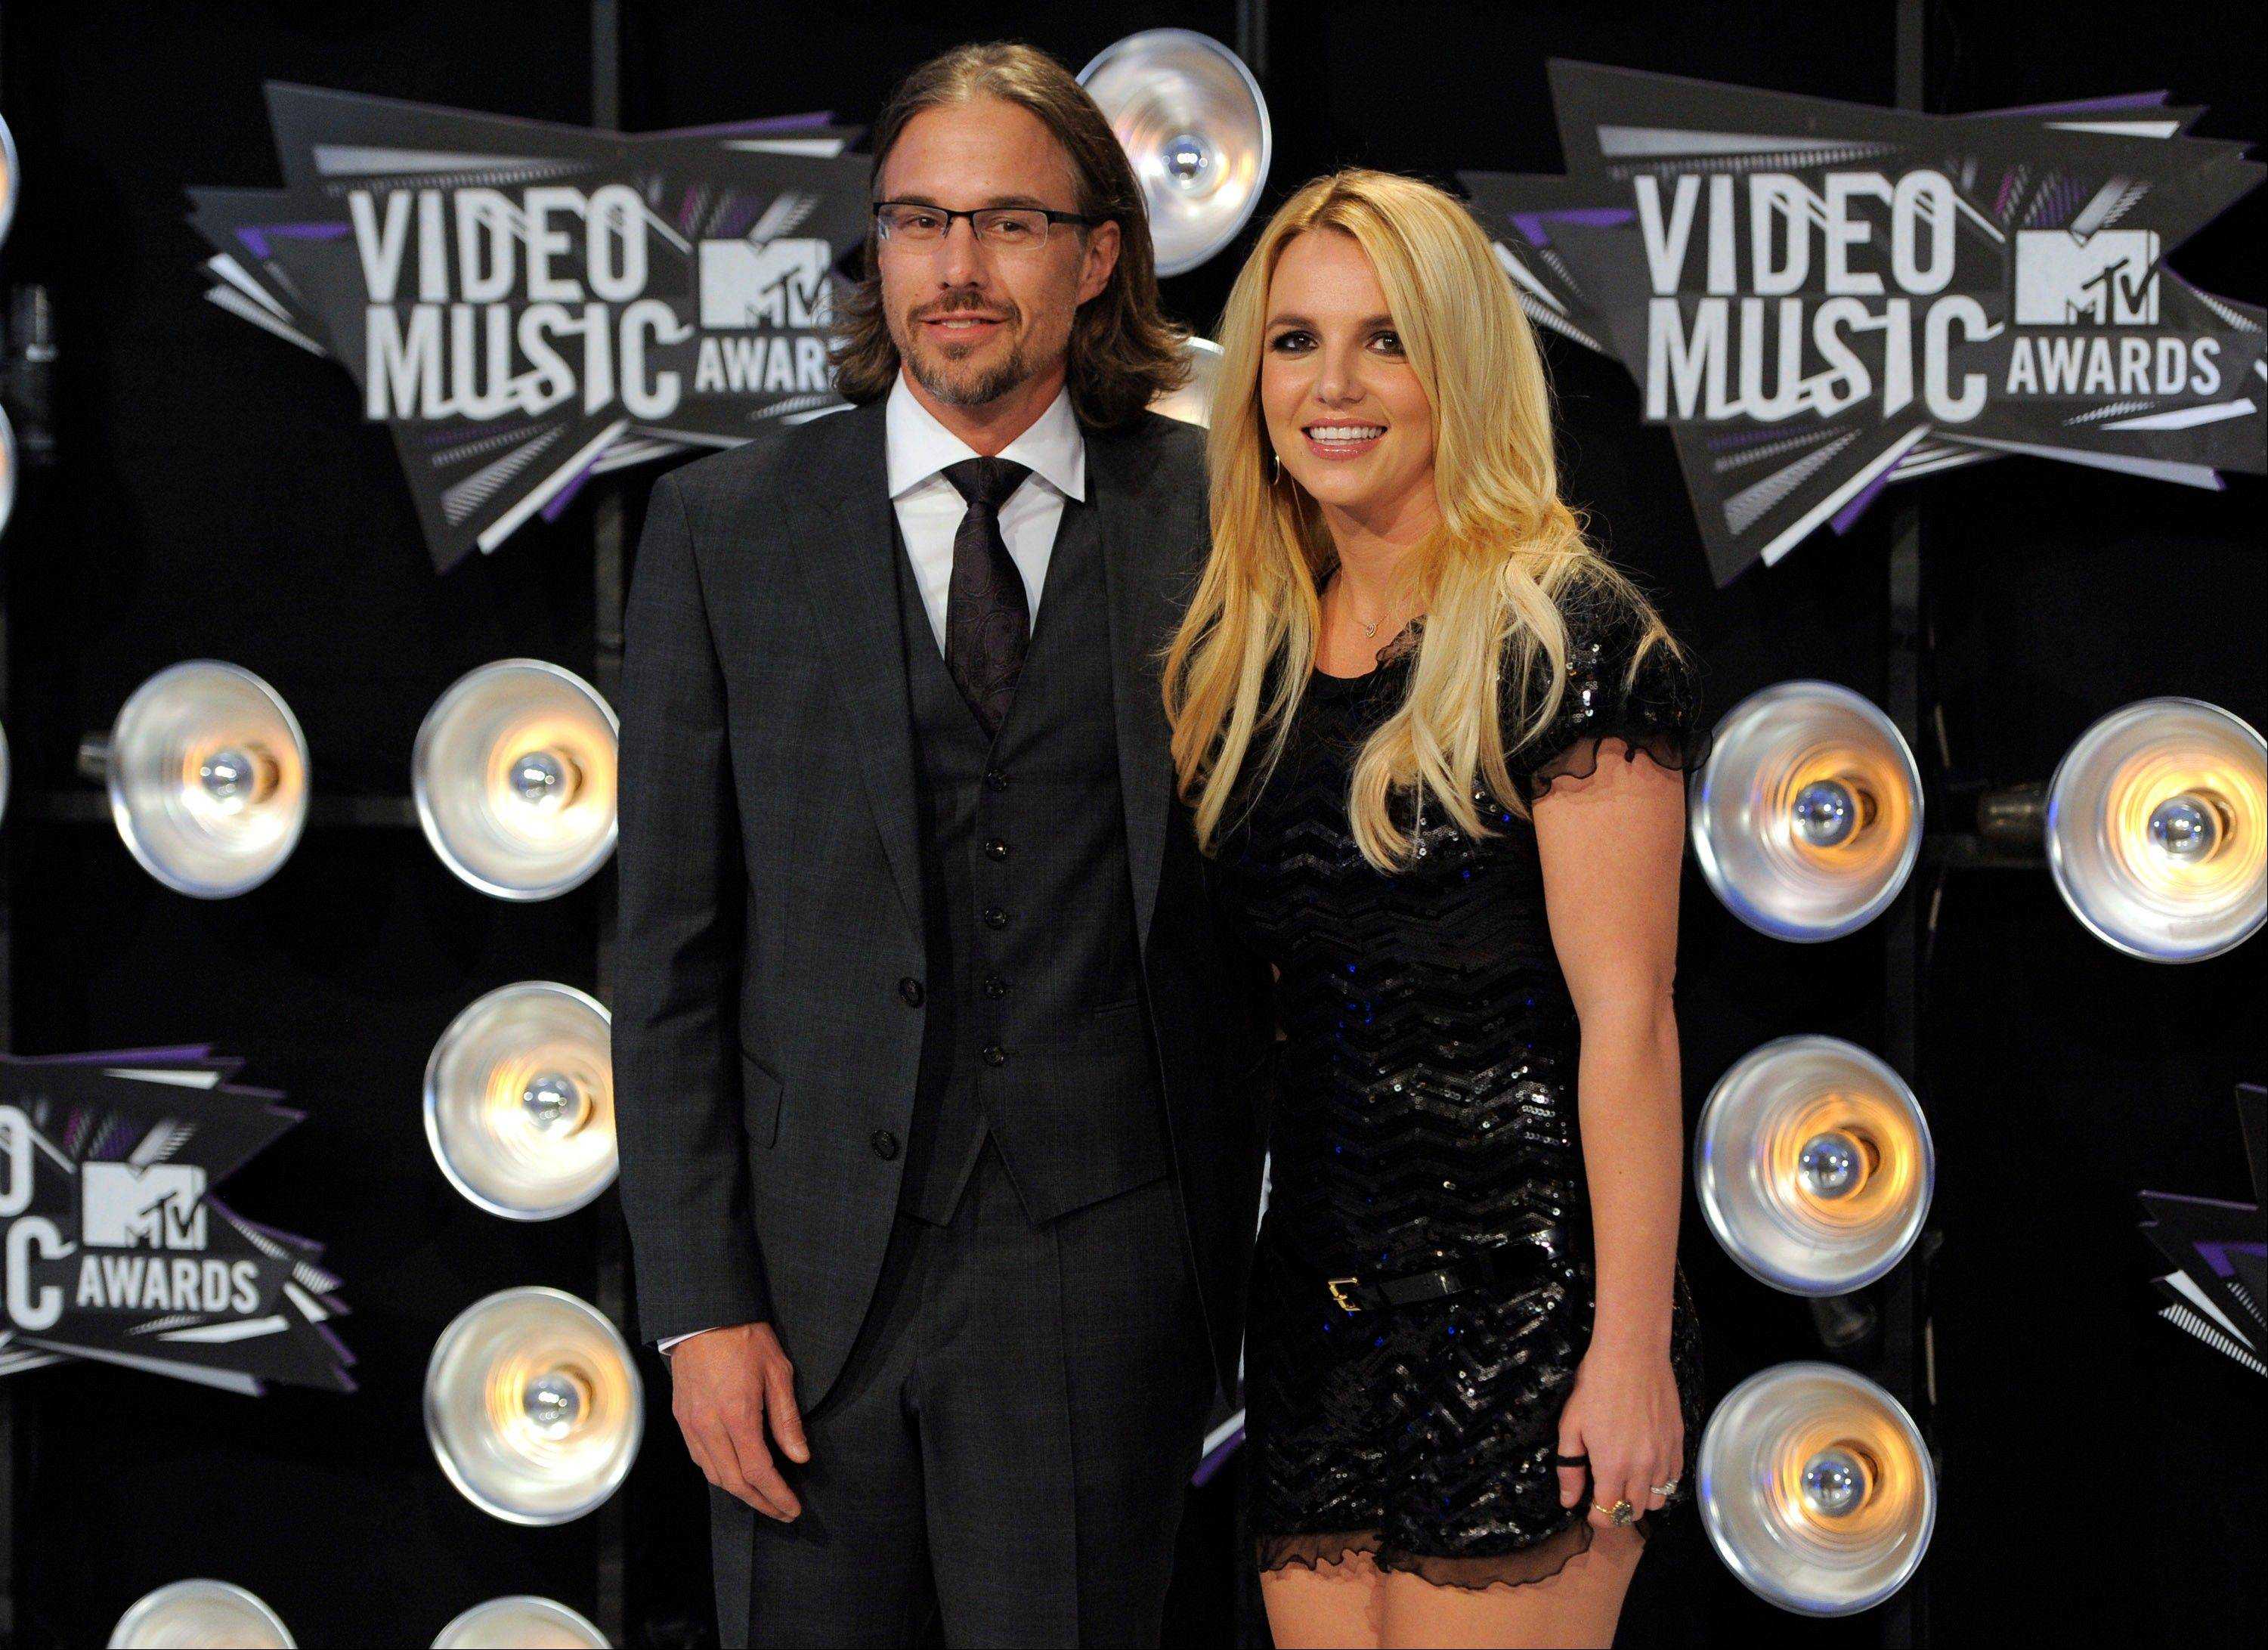 Jason Trawick, left, and Britney Spears arrive at the MTV Video Music Awards on Sunday in Los Angeles.